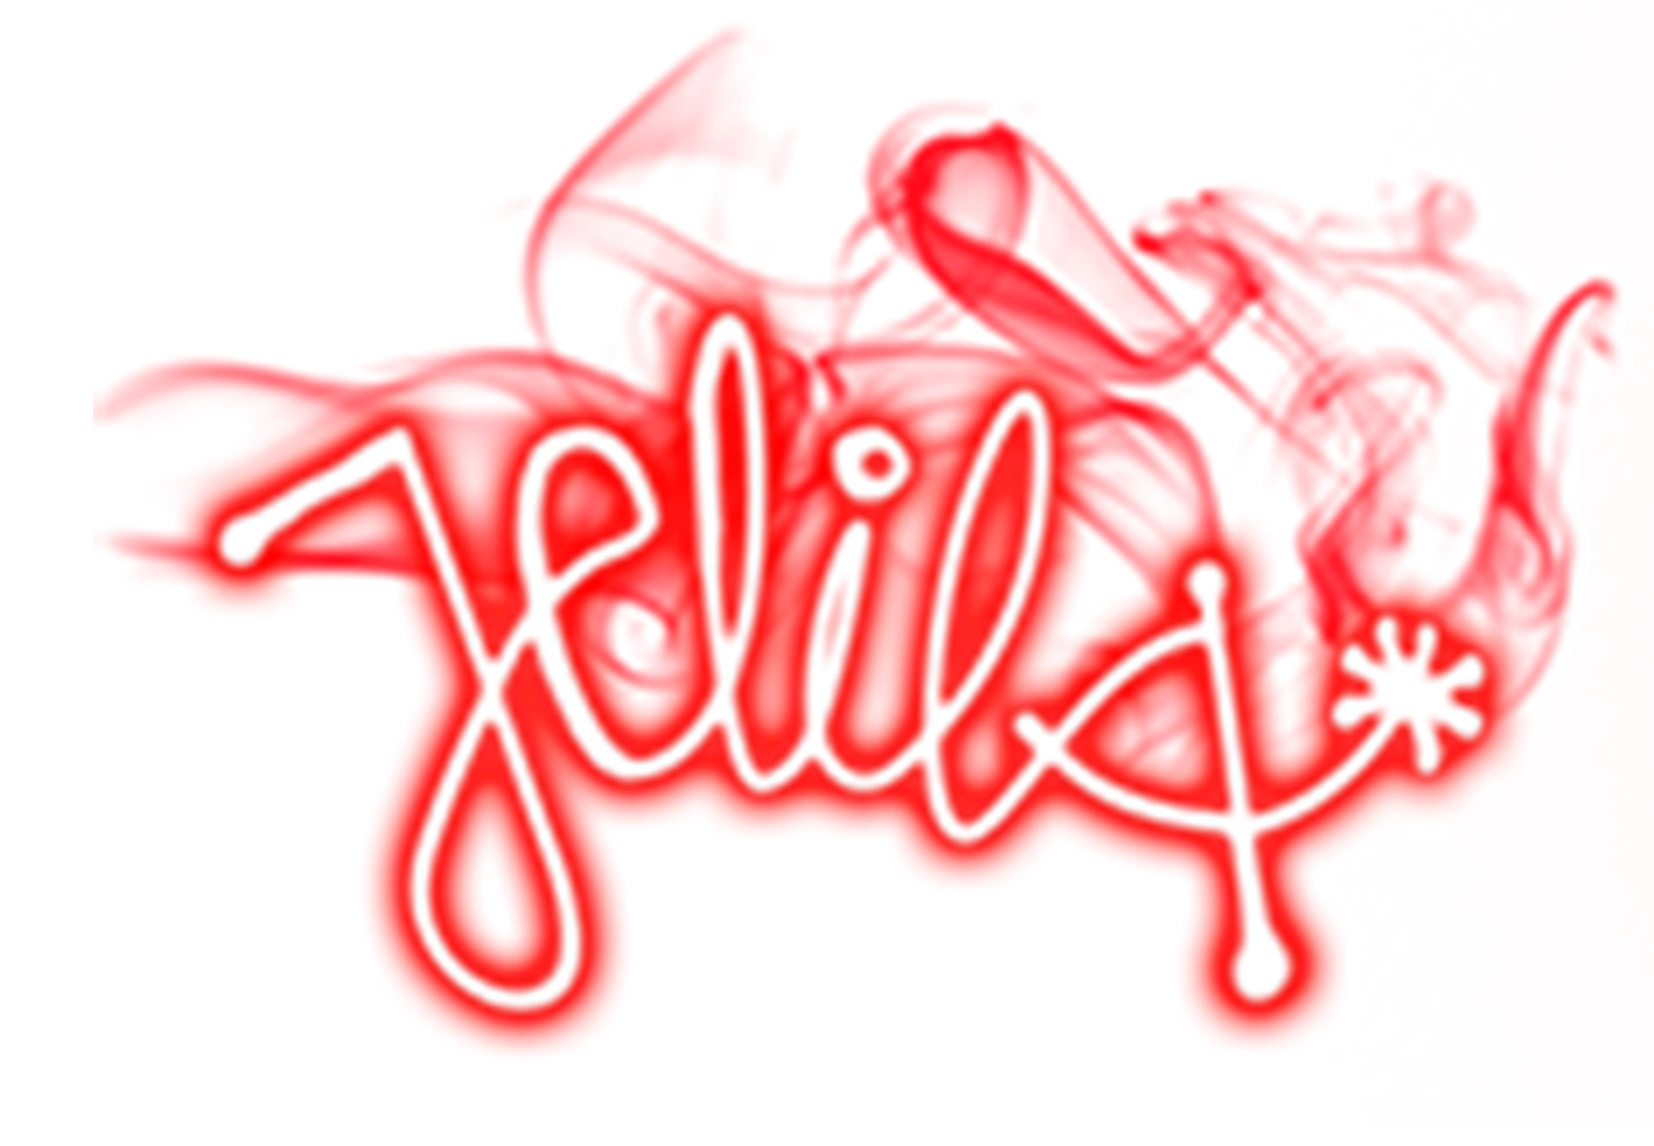 Jelila_Logo_Red-1507113449.jpg